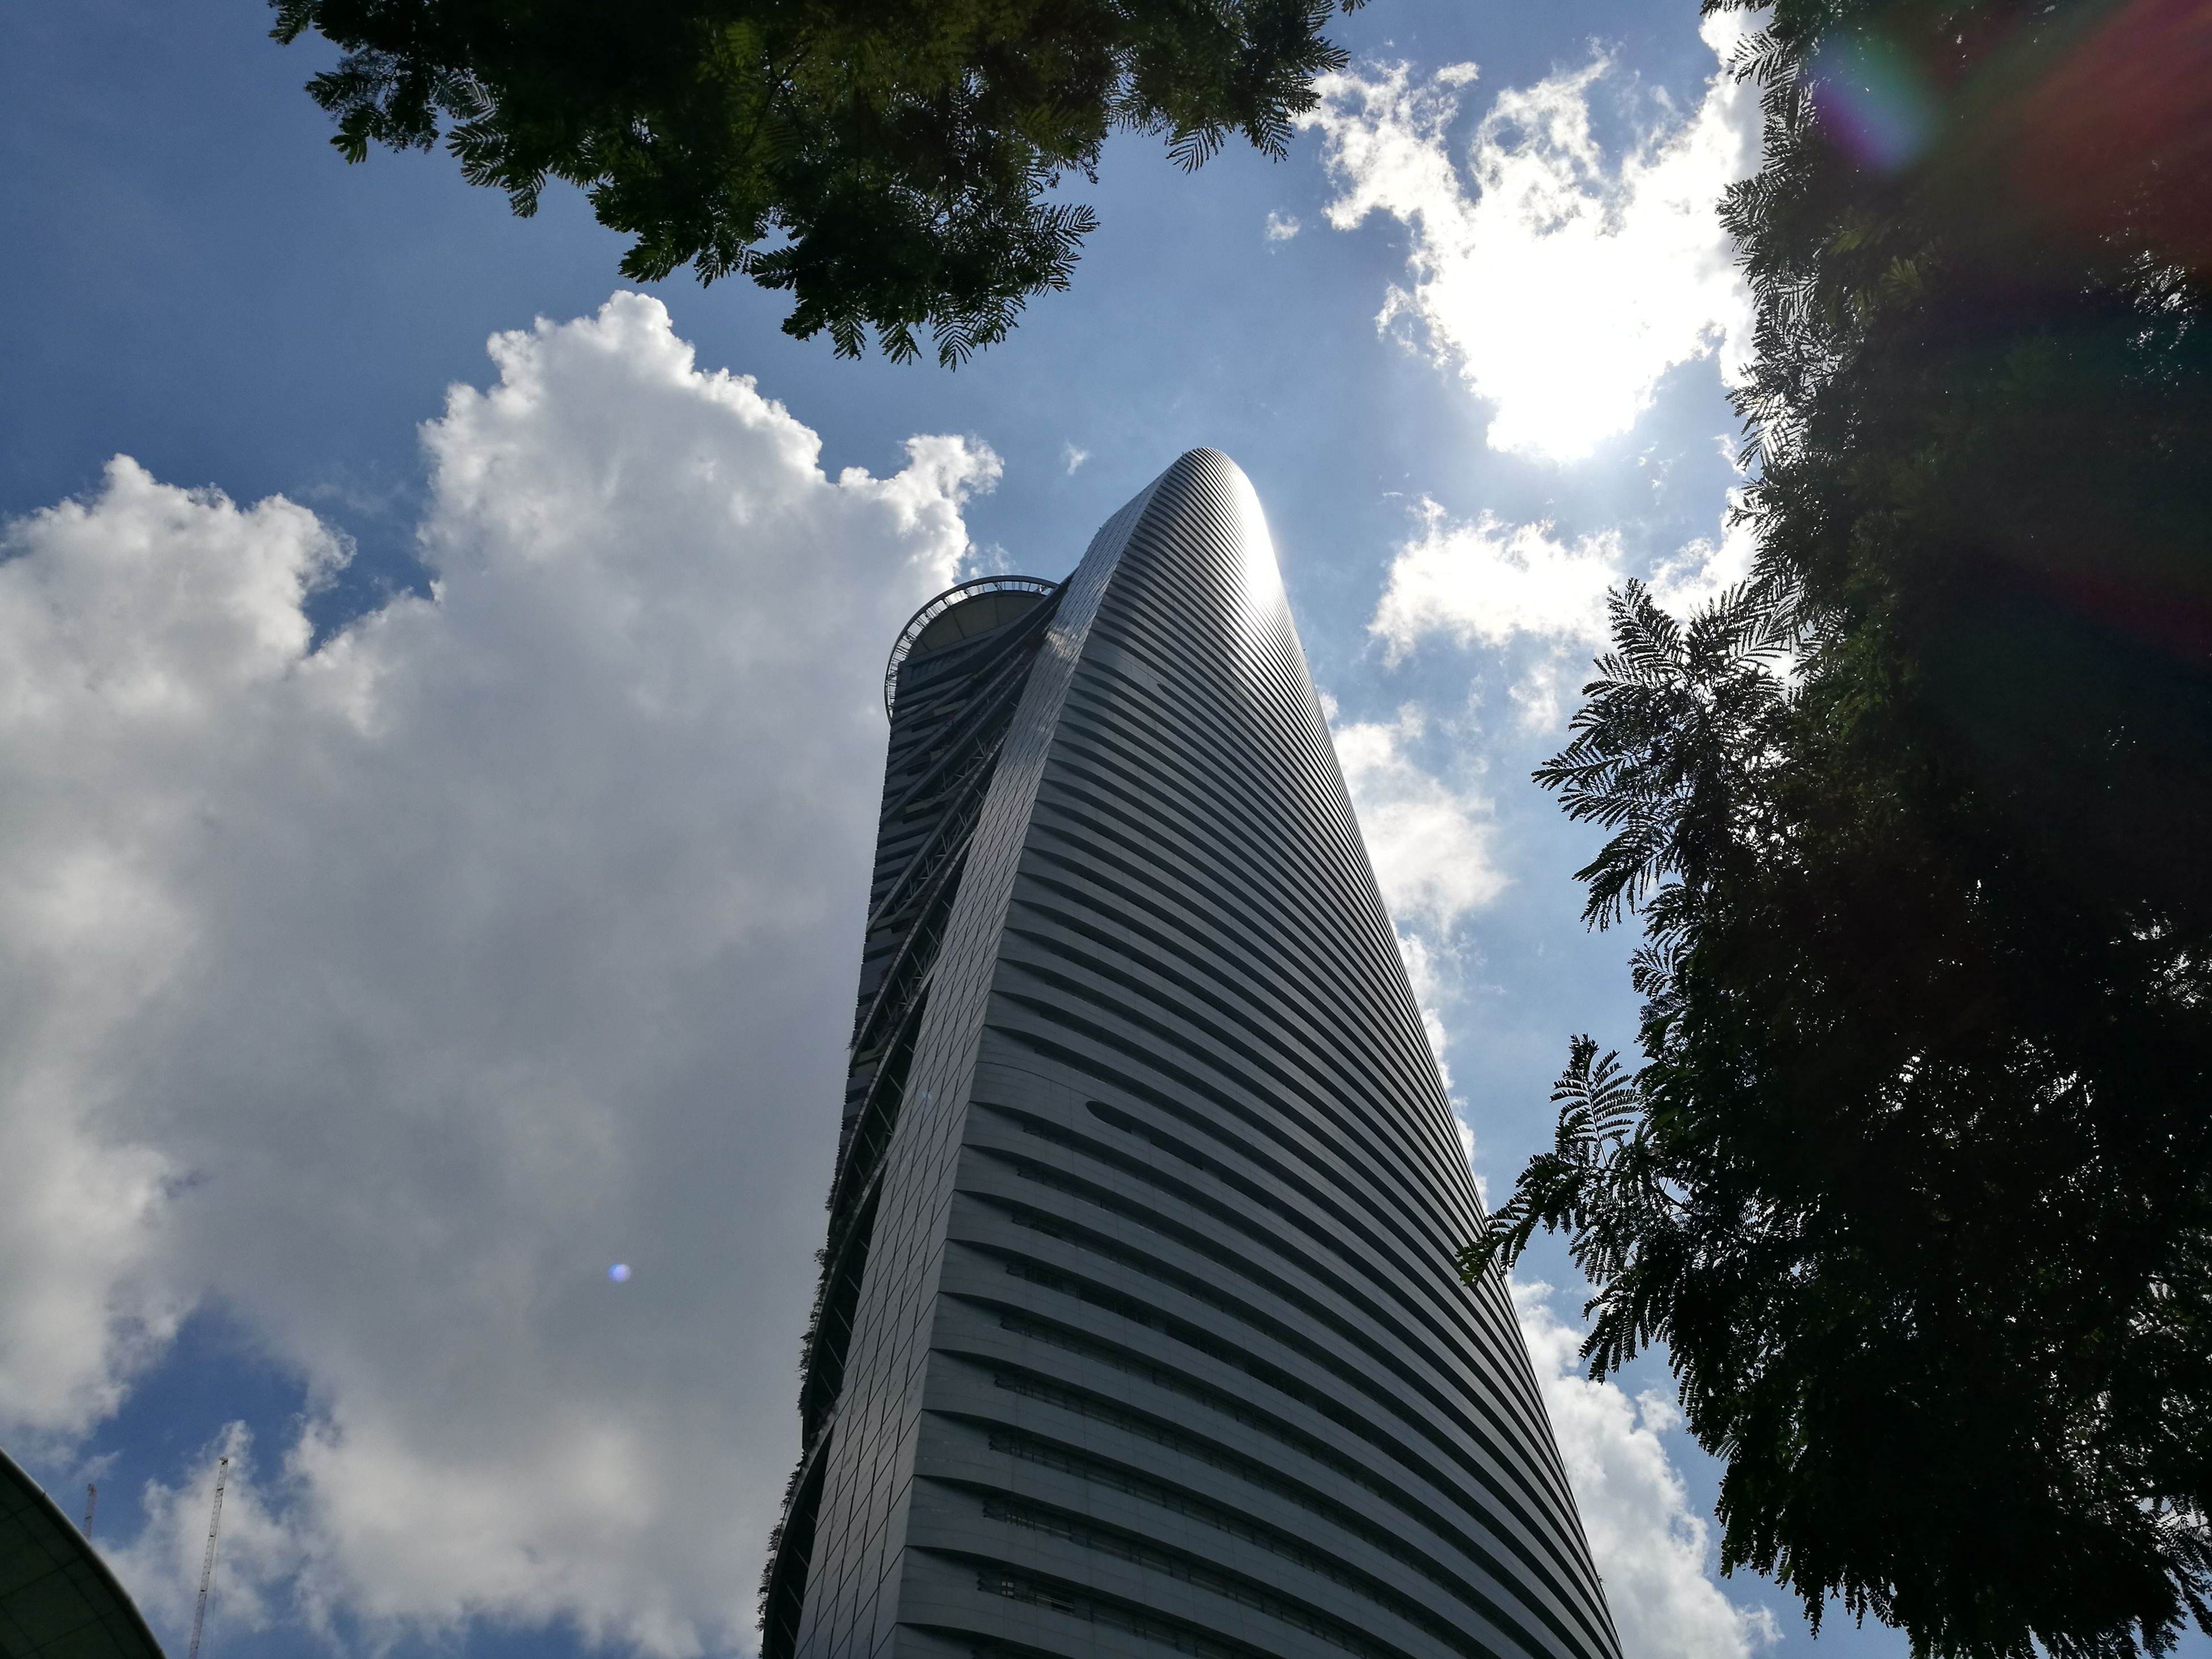 low angle view, skyscraper, sky, tall - high, tower, architecture, city, modern, building exterior, built structure, tree, cloud - sky, office building, growth, sun, day, cloud, outdoors, tall, bright, diminishing perspective, city life